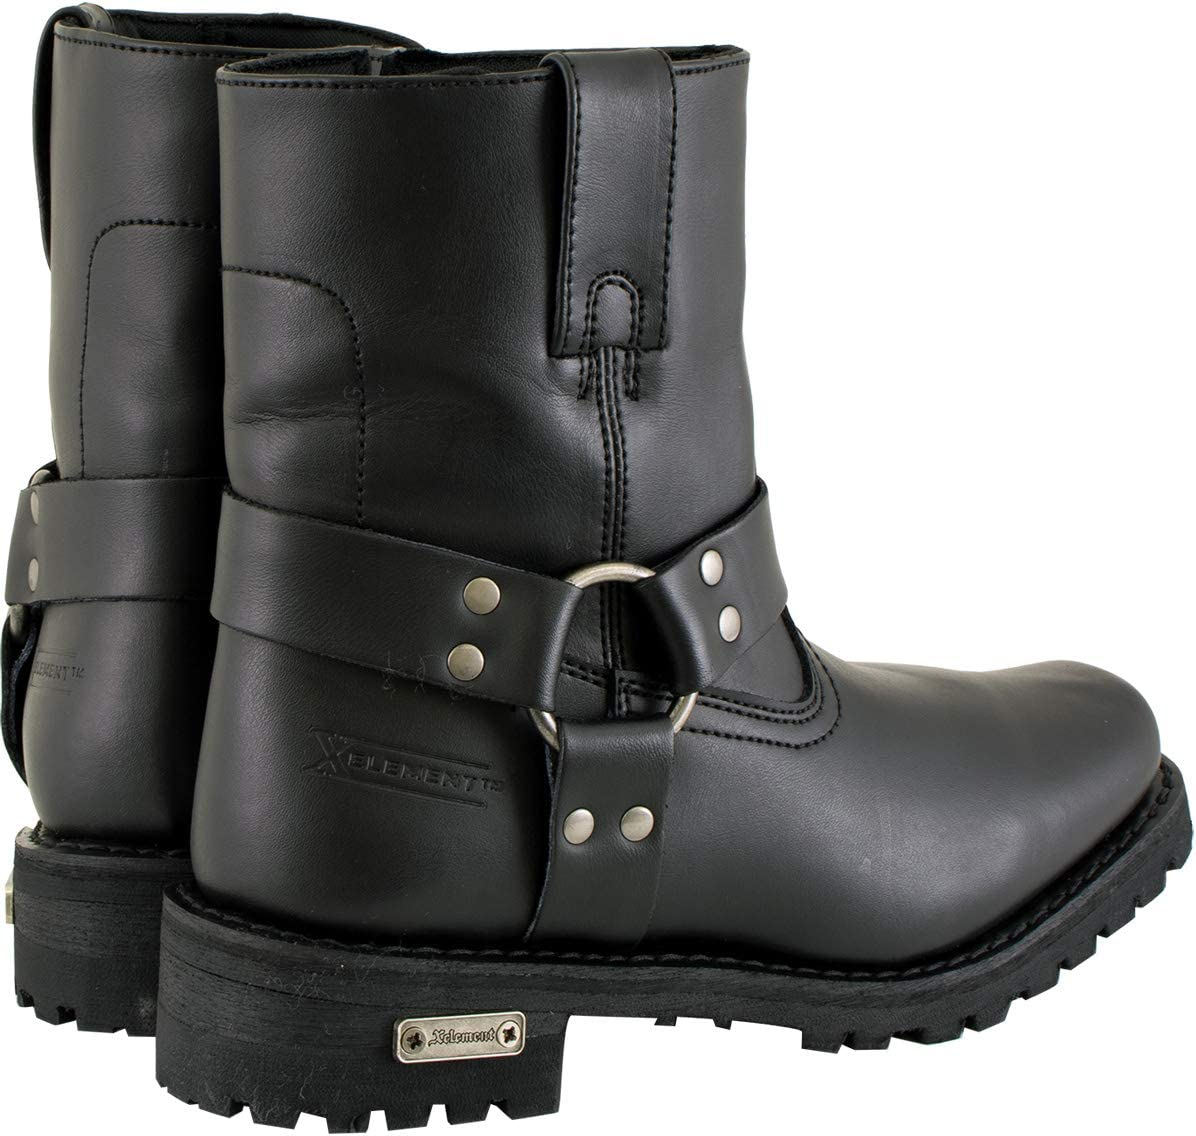 Xelement 2502 Shorty Womens Black Zipper Harness Motorcycle Leather Boots 8